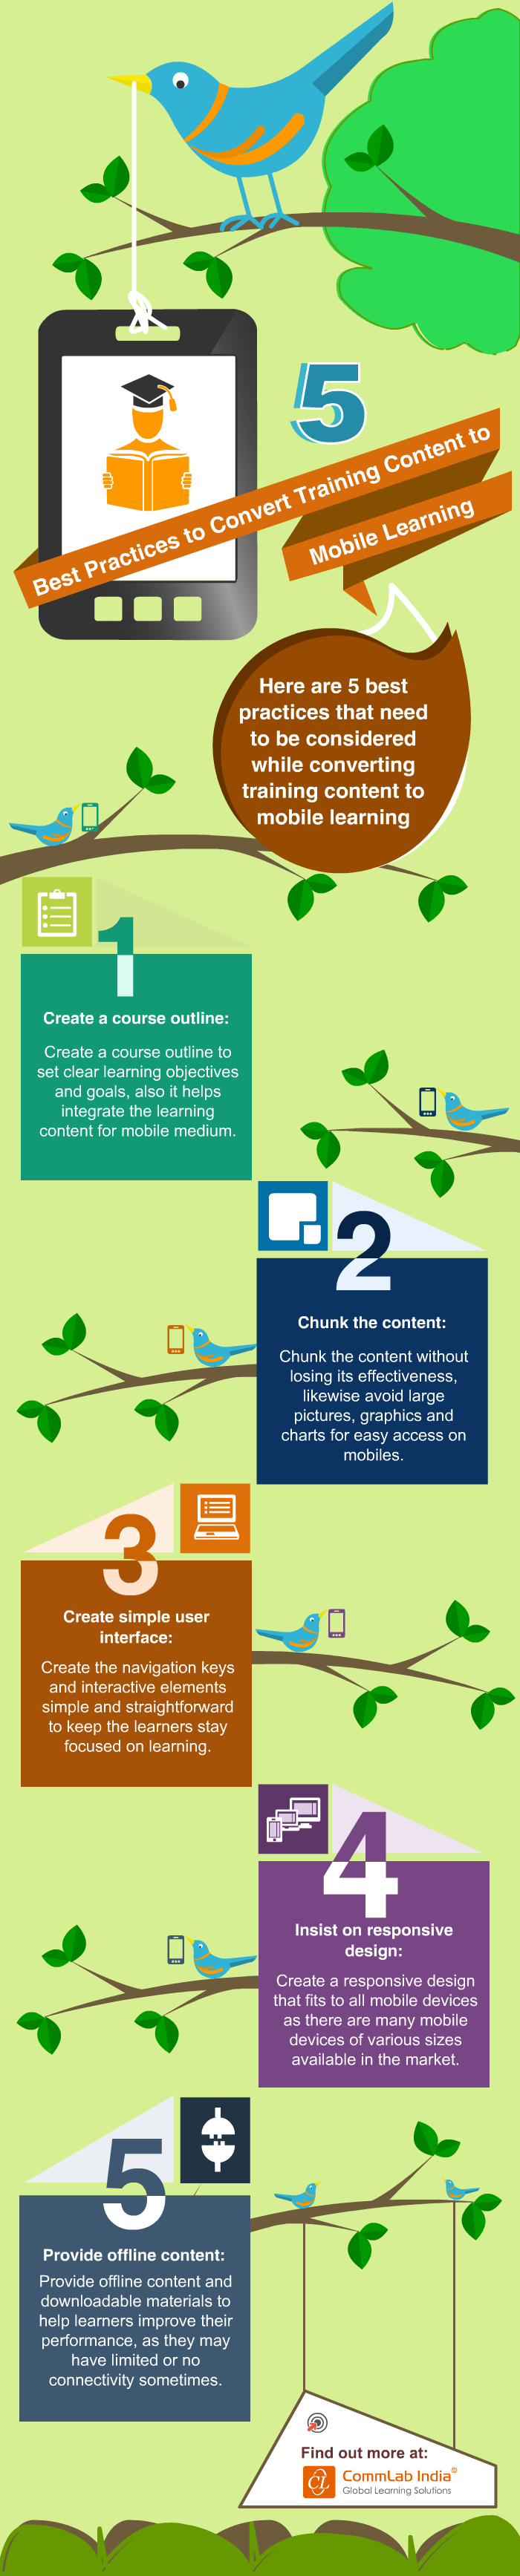 5 Best Practices to Convert Training Content to Mobile Learning [Infographic]